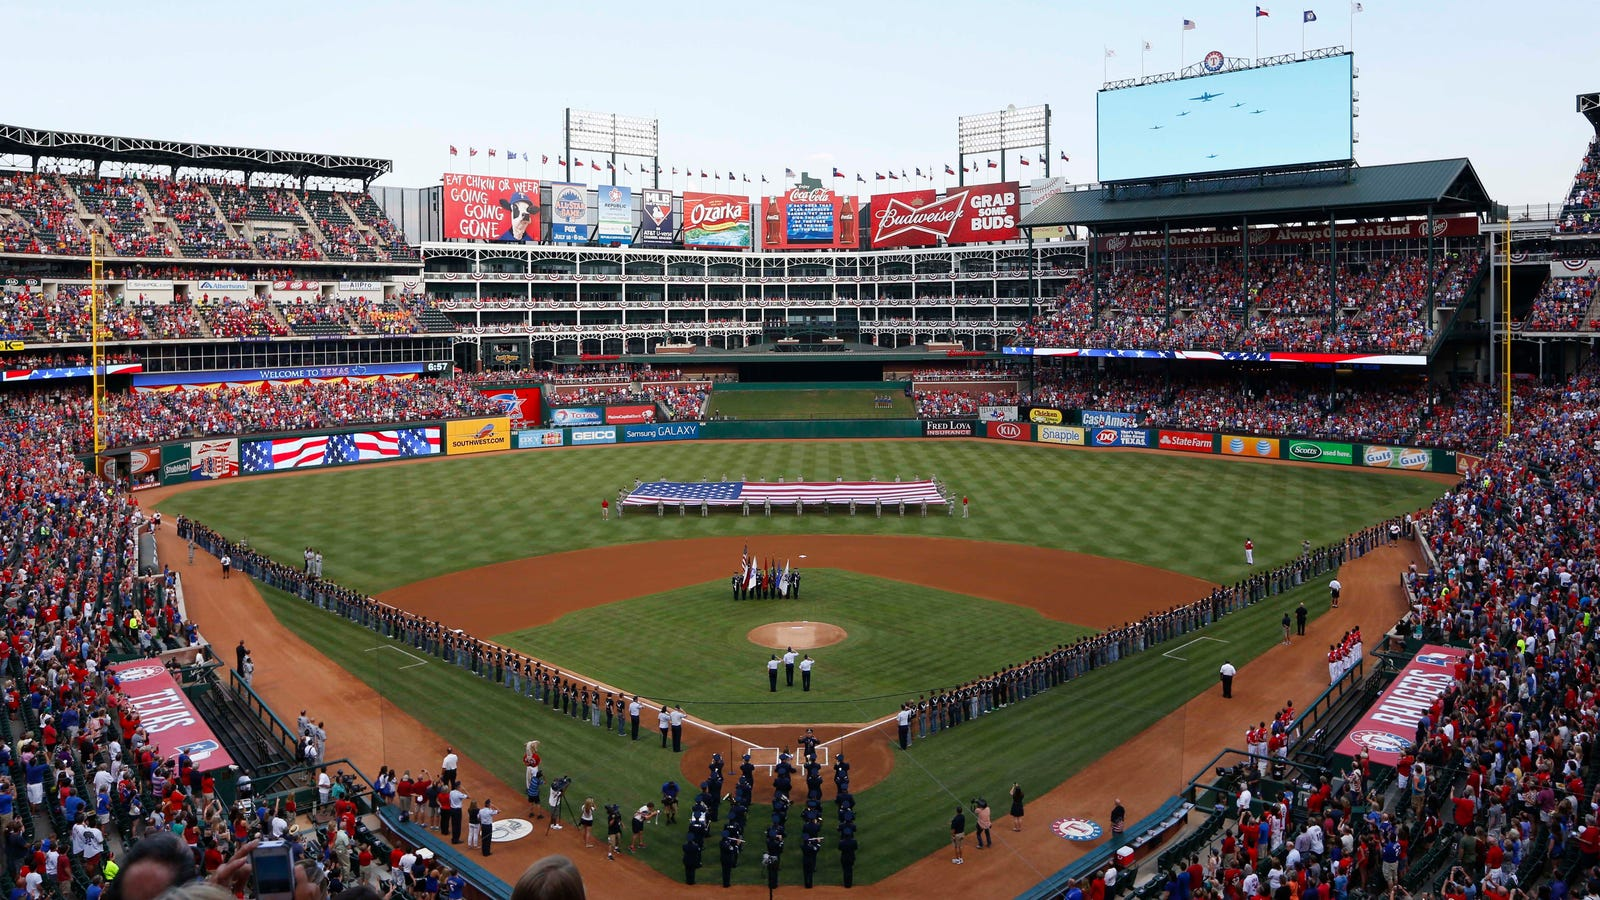 Report Rangers Want New Modern Ballpark To Replace